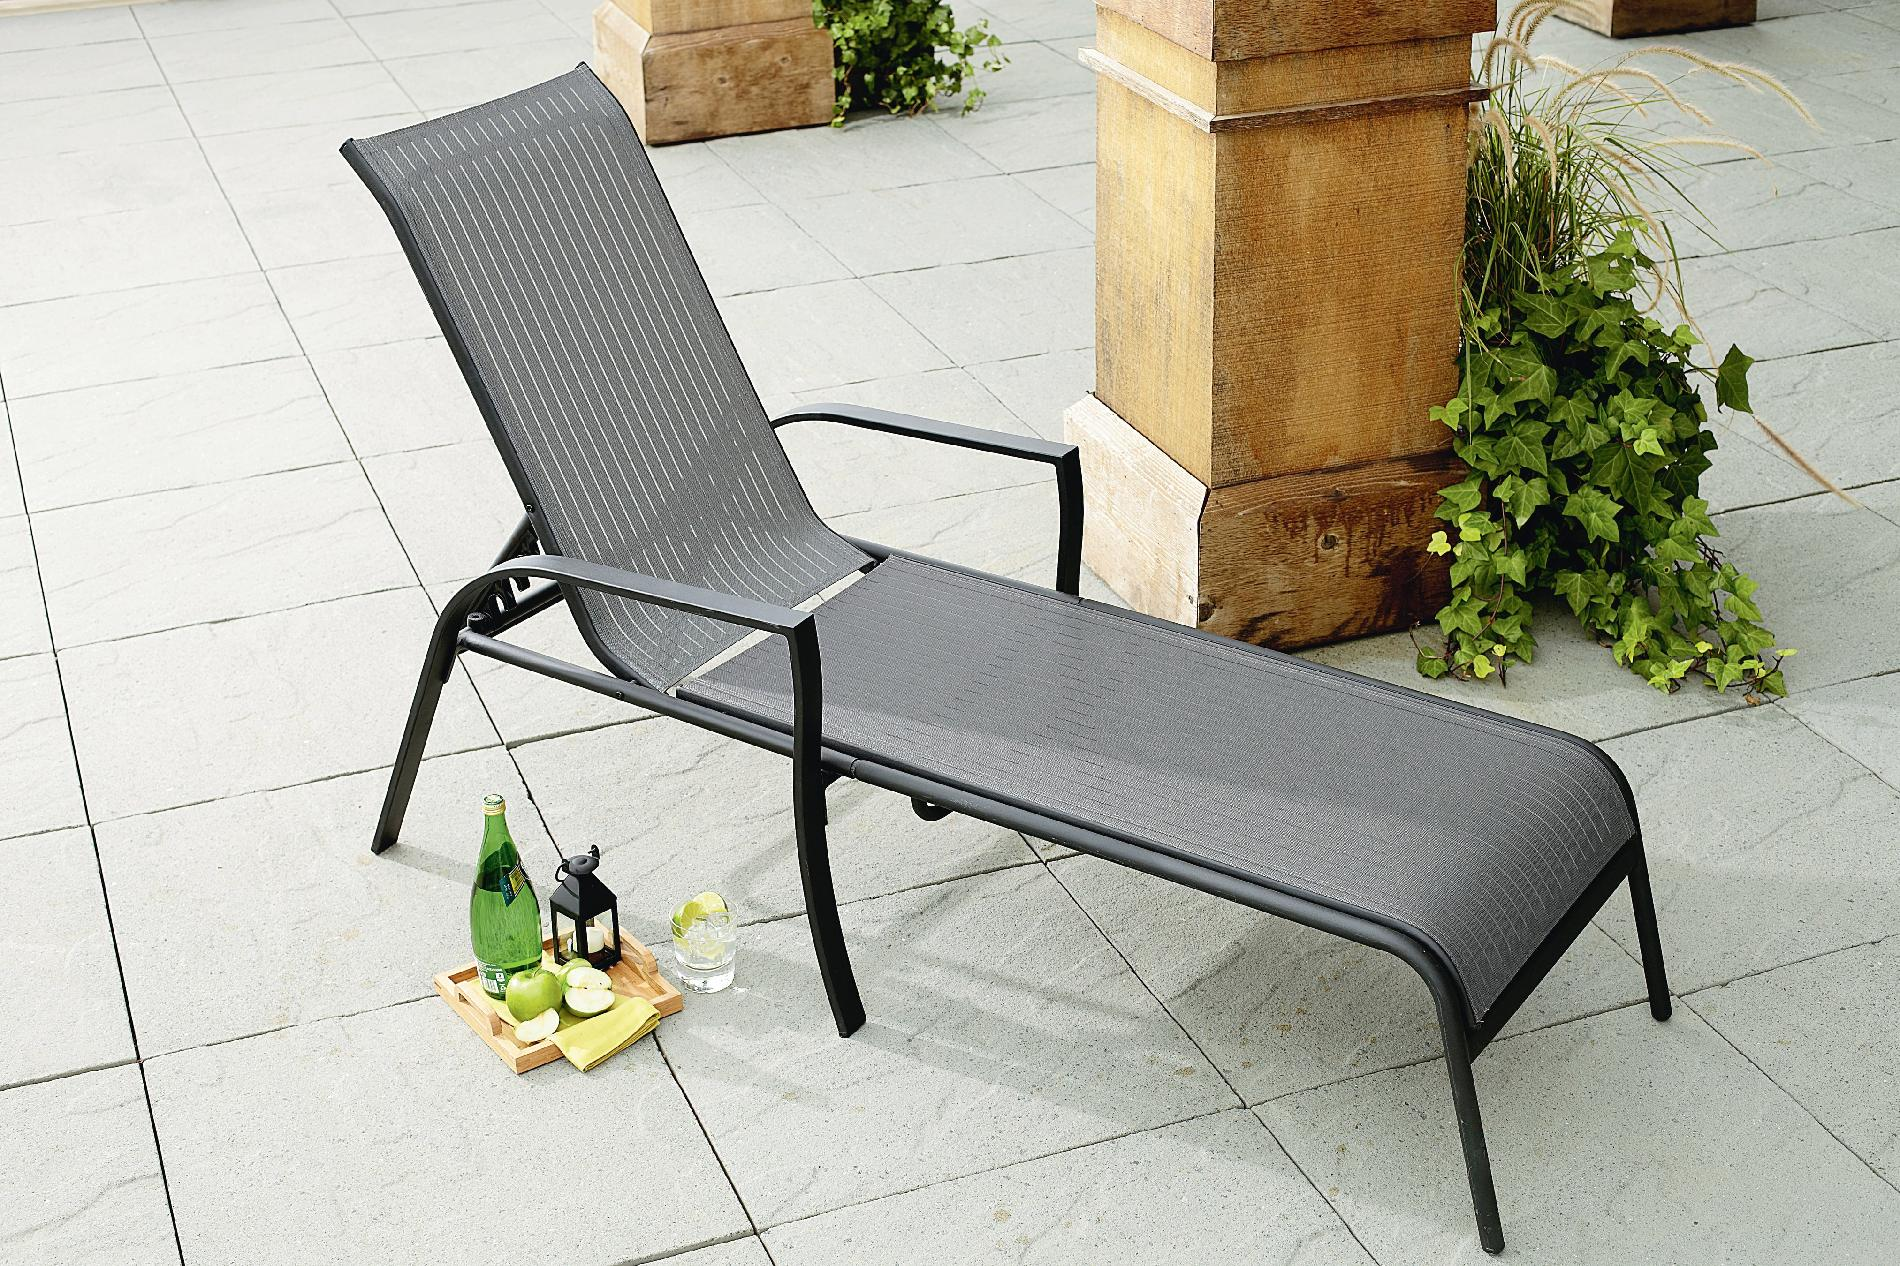 sun lounge chairs kmart consumer reports lift essential garden hinton sling chaise limited